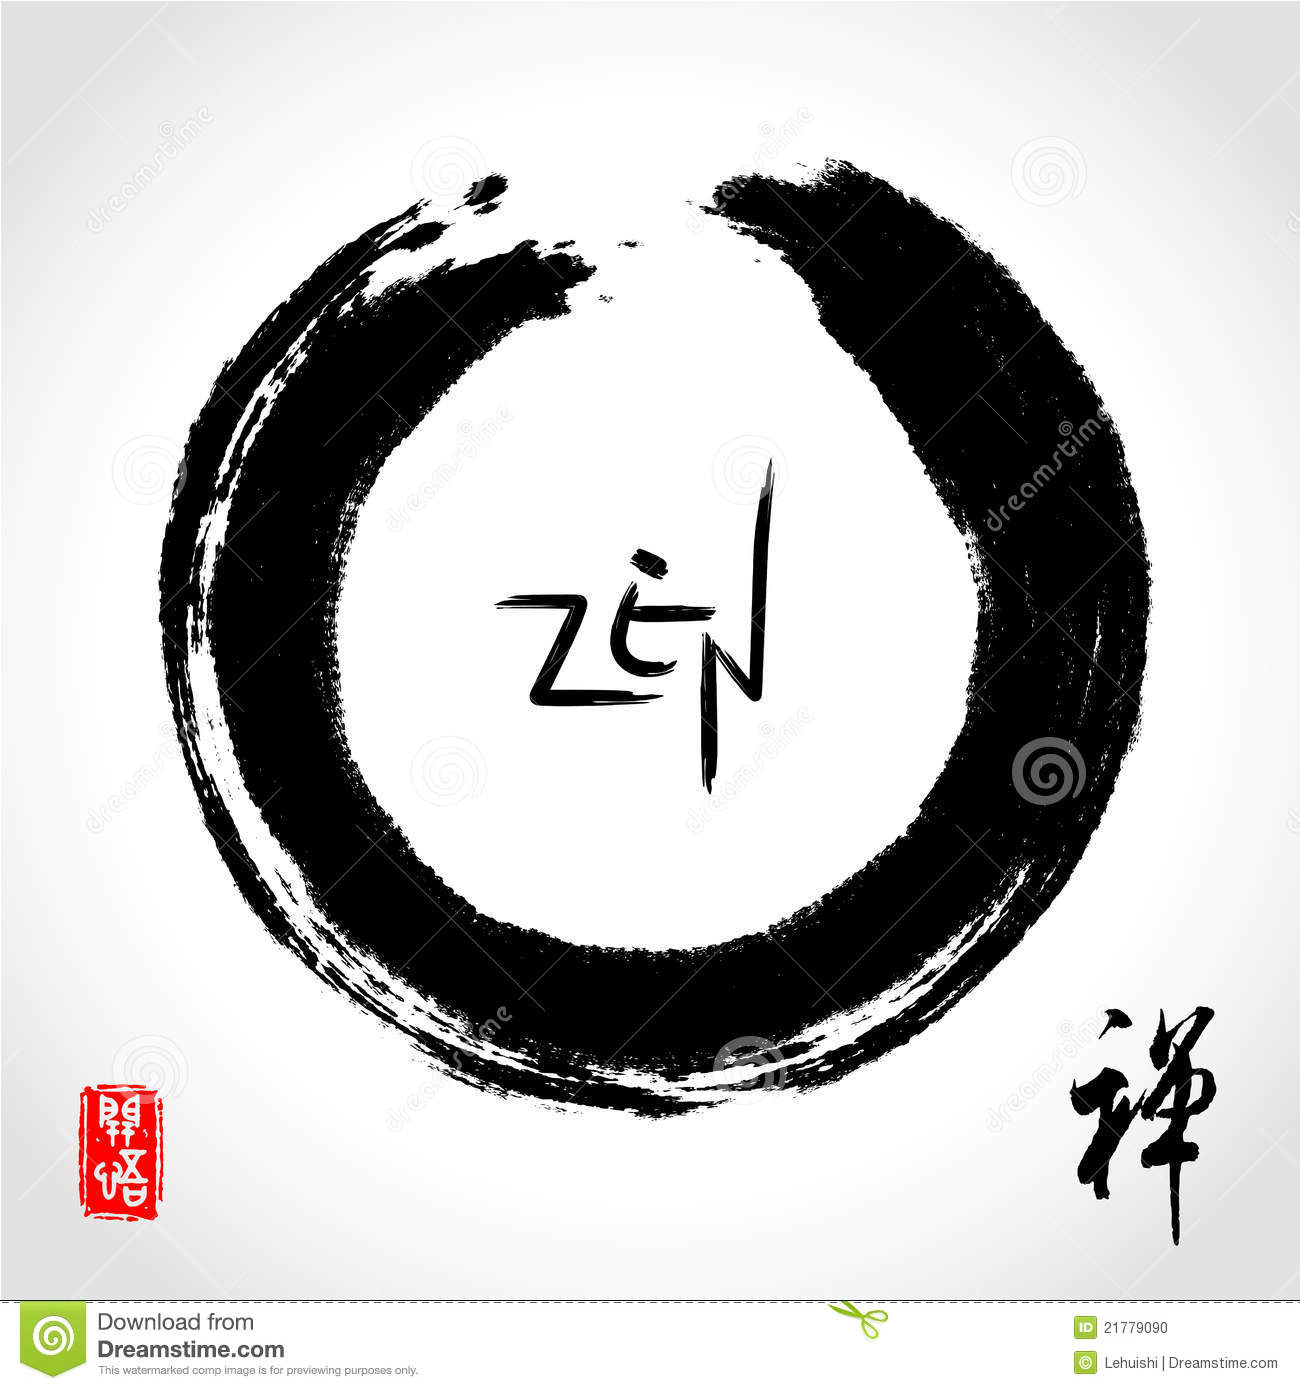 zen definition related keywords - photo #29